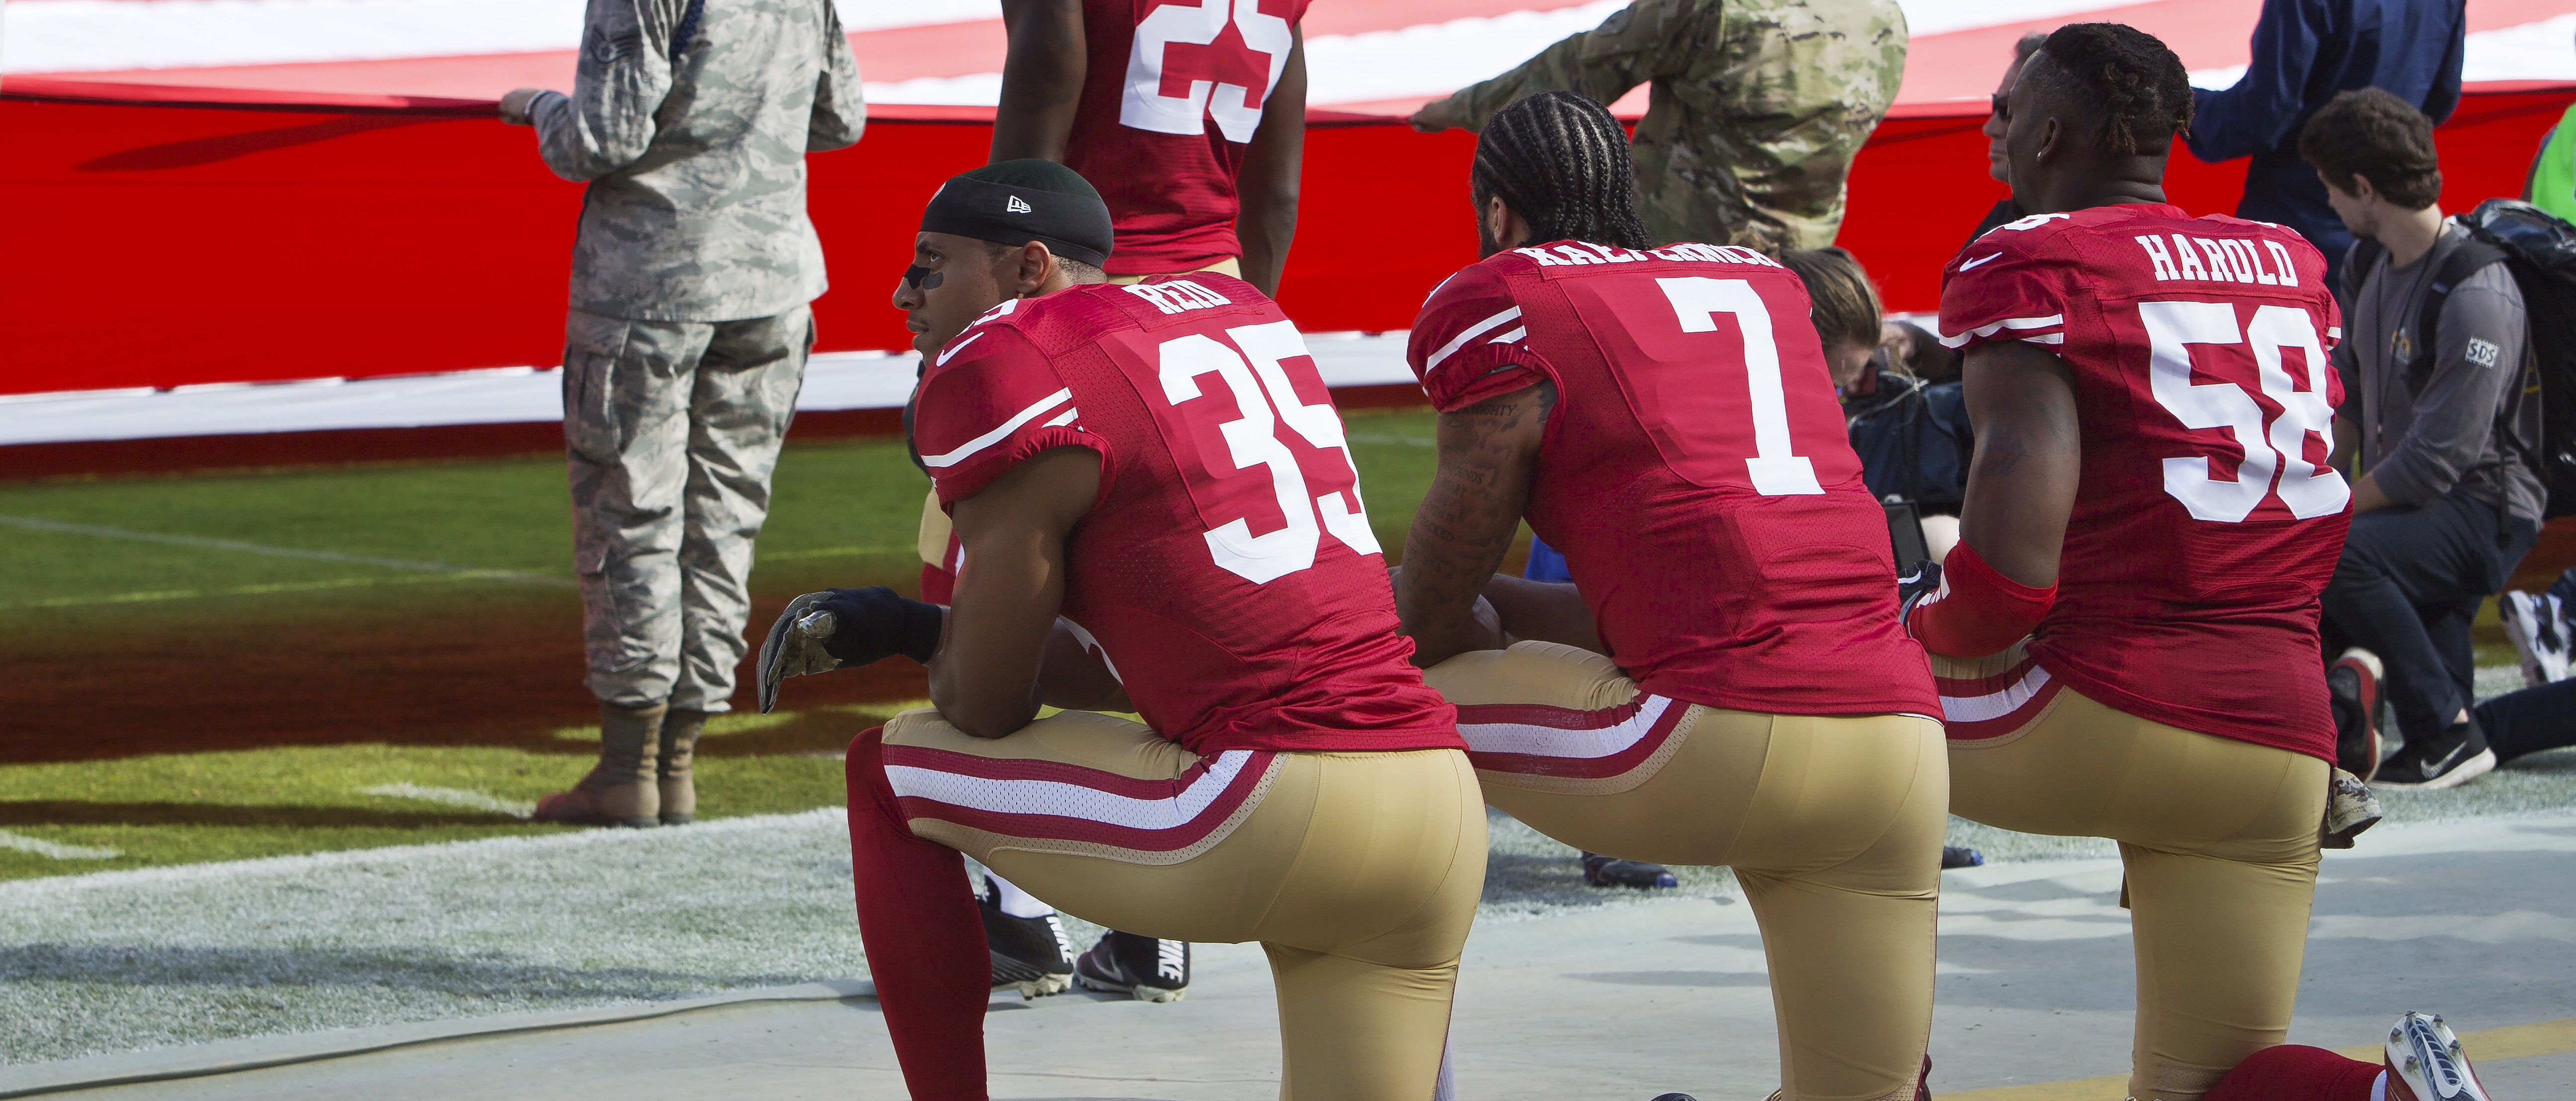 SANTA CLARA, CA - NOVEMBER 6: Quarterback Colin Kaepernick #7, safety Eric Reid #35, and linebacker Eli Harold #58 of the San Francisco 49ers kneel before a game against the New Orleans Saints with the U.S. flag unfurled in honor of the armed services on November, 6 2016 at Levi's Stadium in Santa Clara, California. The Saints won 41-23. (Photo by Brian Bahr/Getty Images)